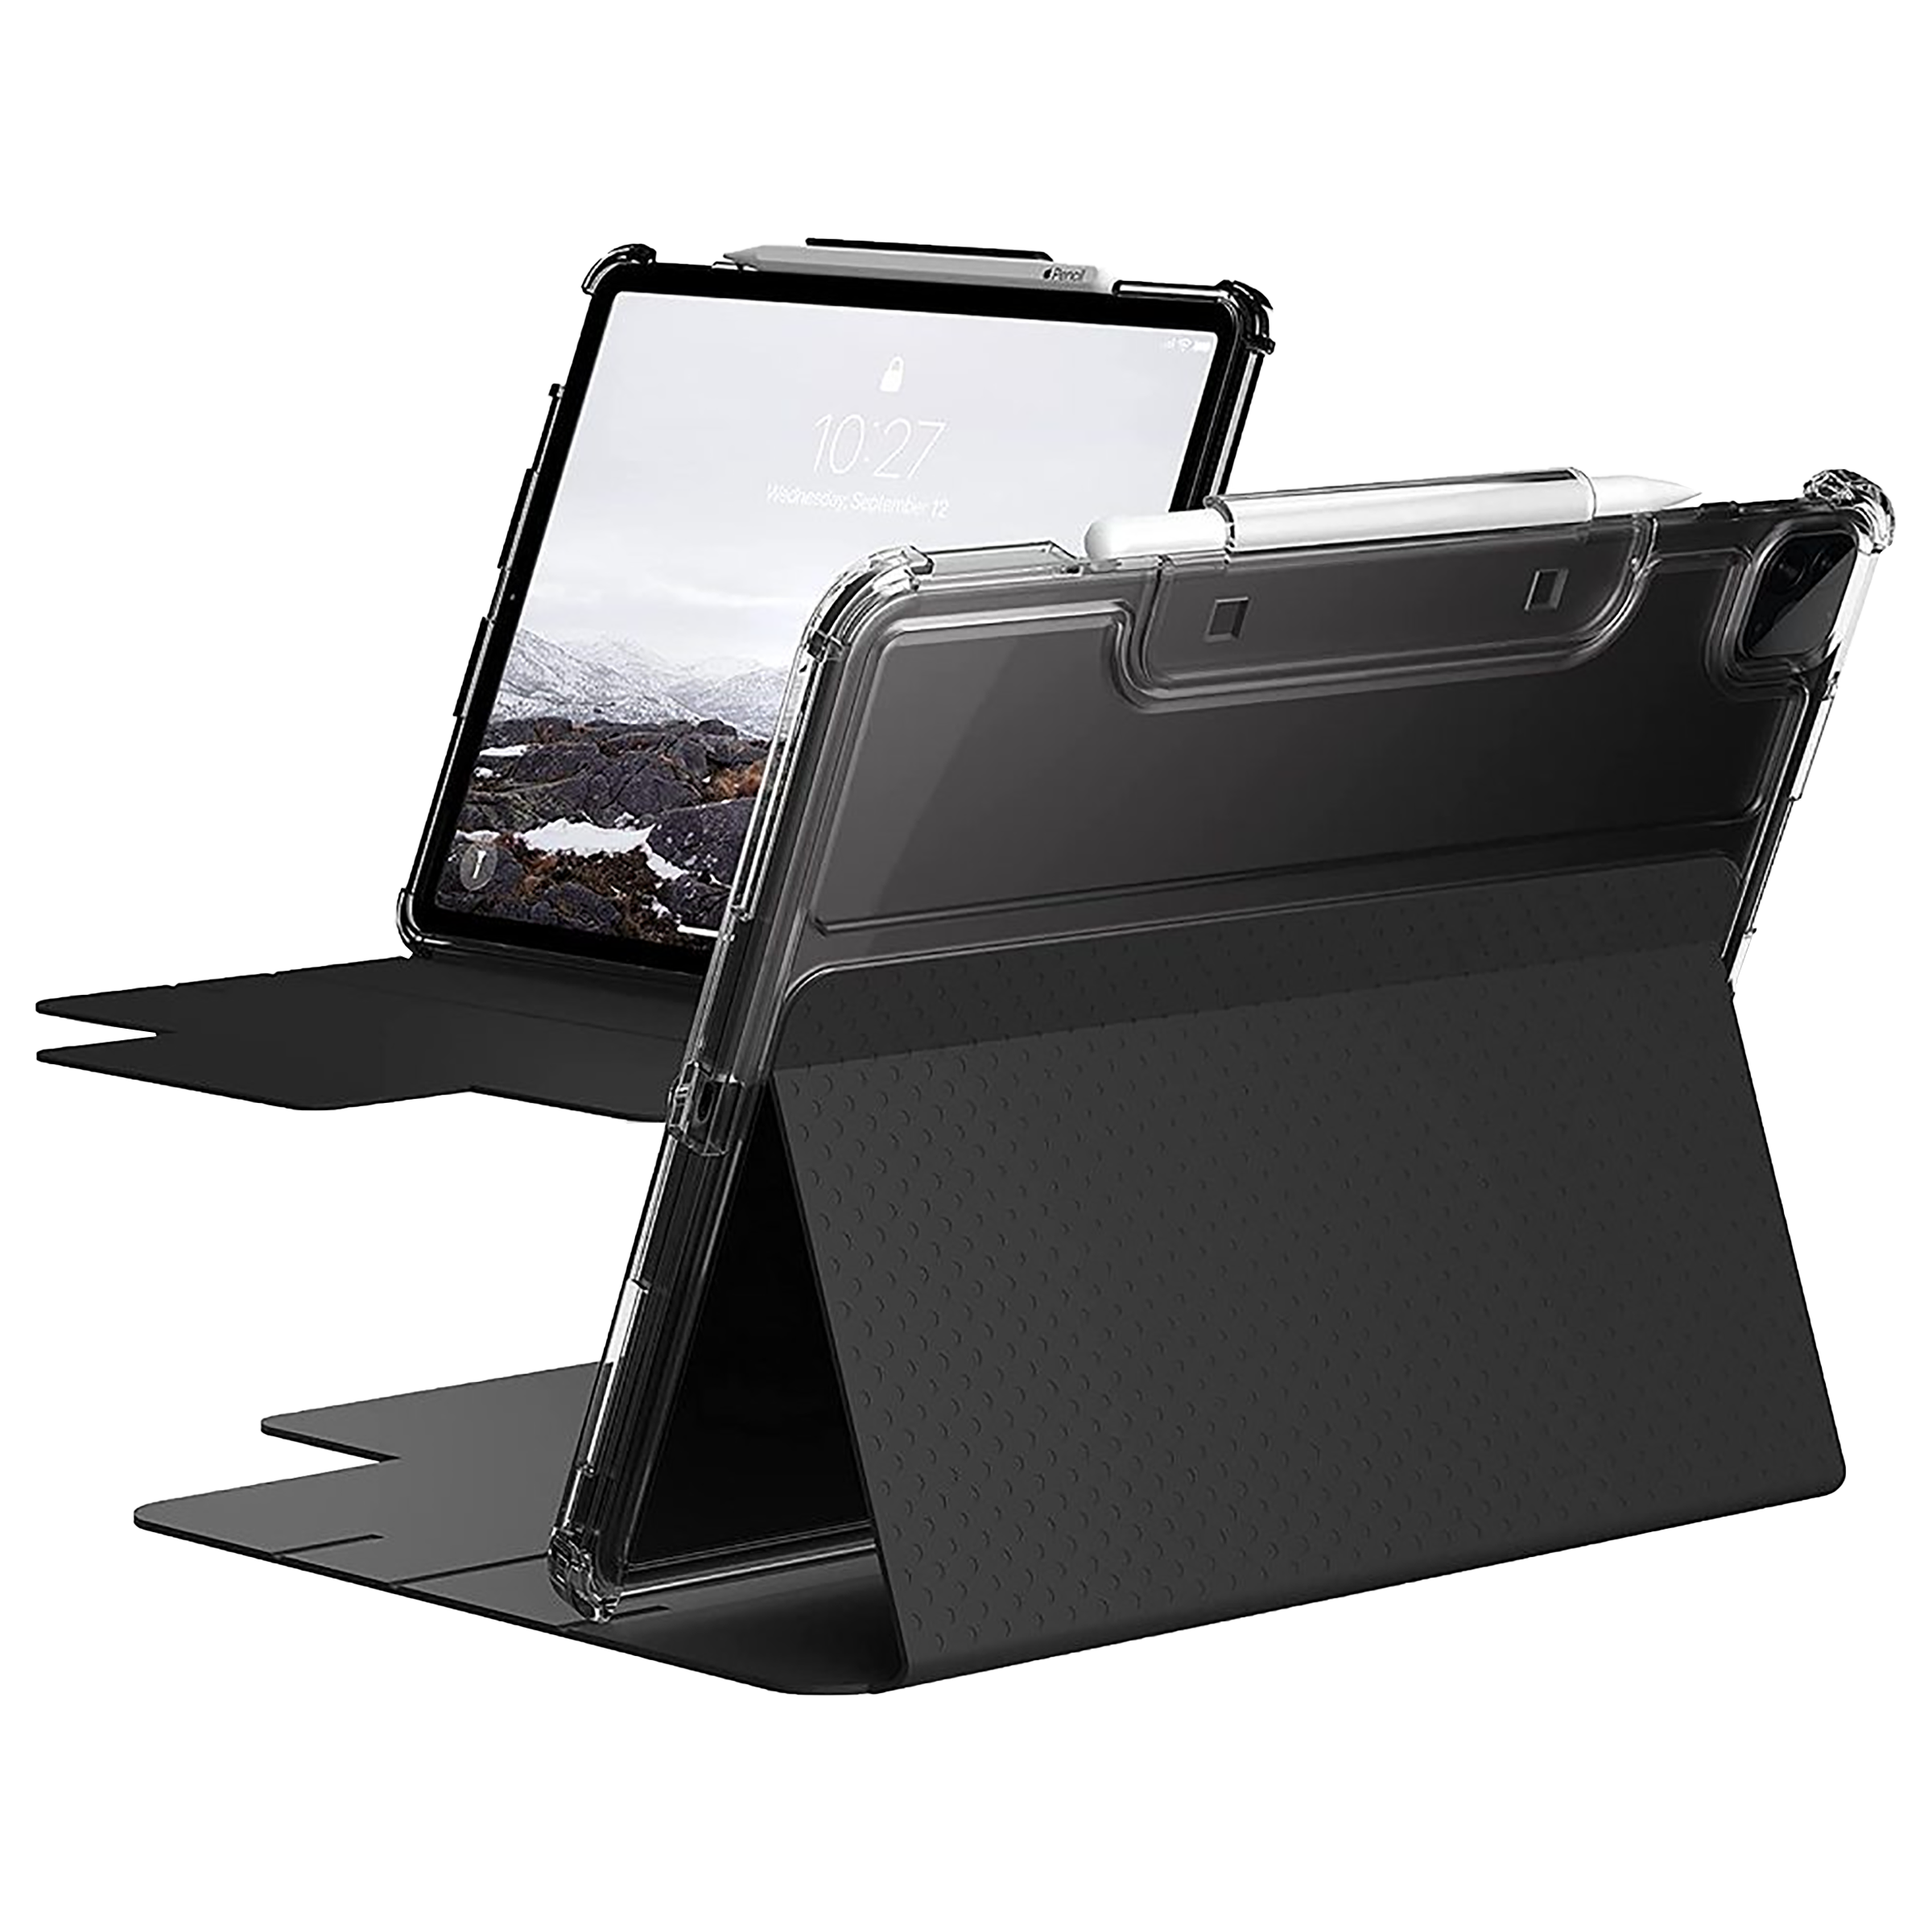 UAG Lucent Polycarbonate Flip Case with Stand For Apple iPad Pro 12.9 Inch (Built-In Apple Pencil Holder, UGLU_129G5_BK_IC, Clear Black)_1